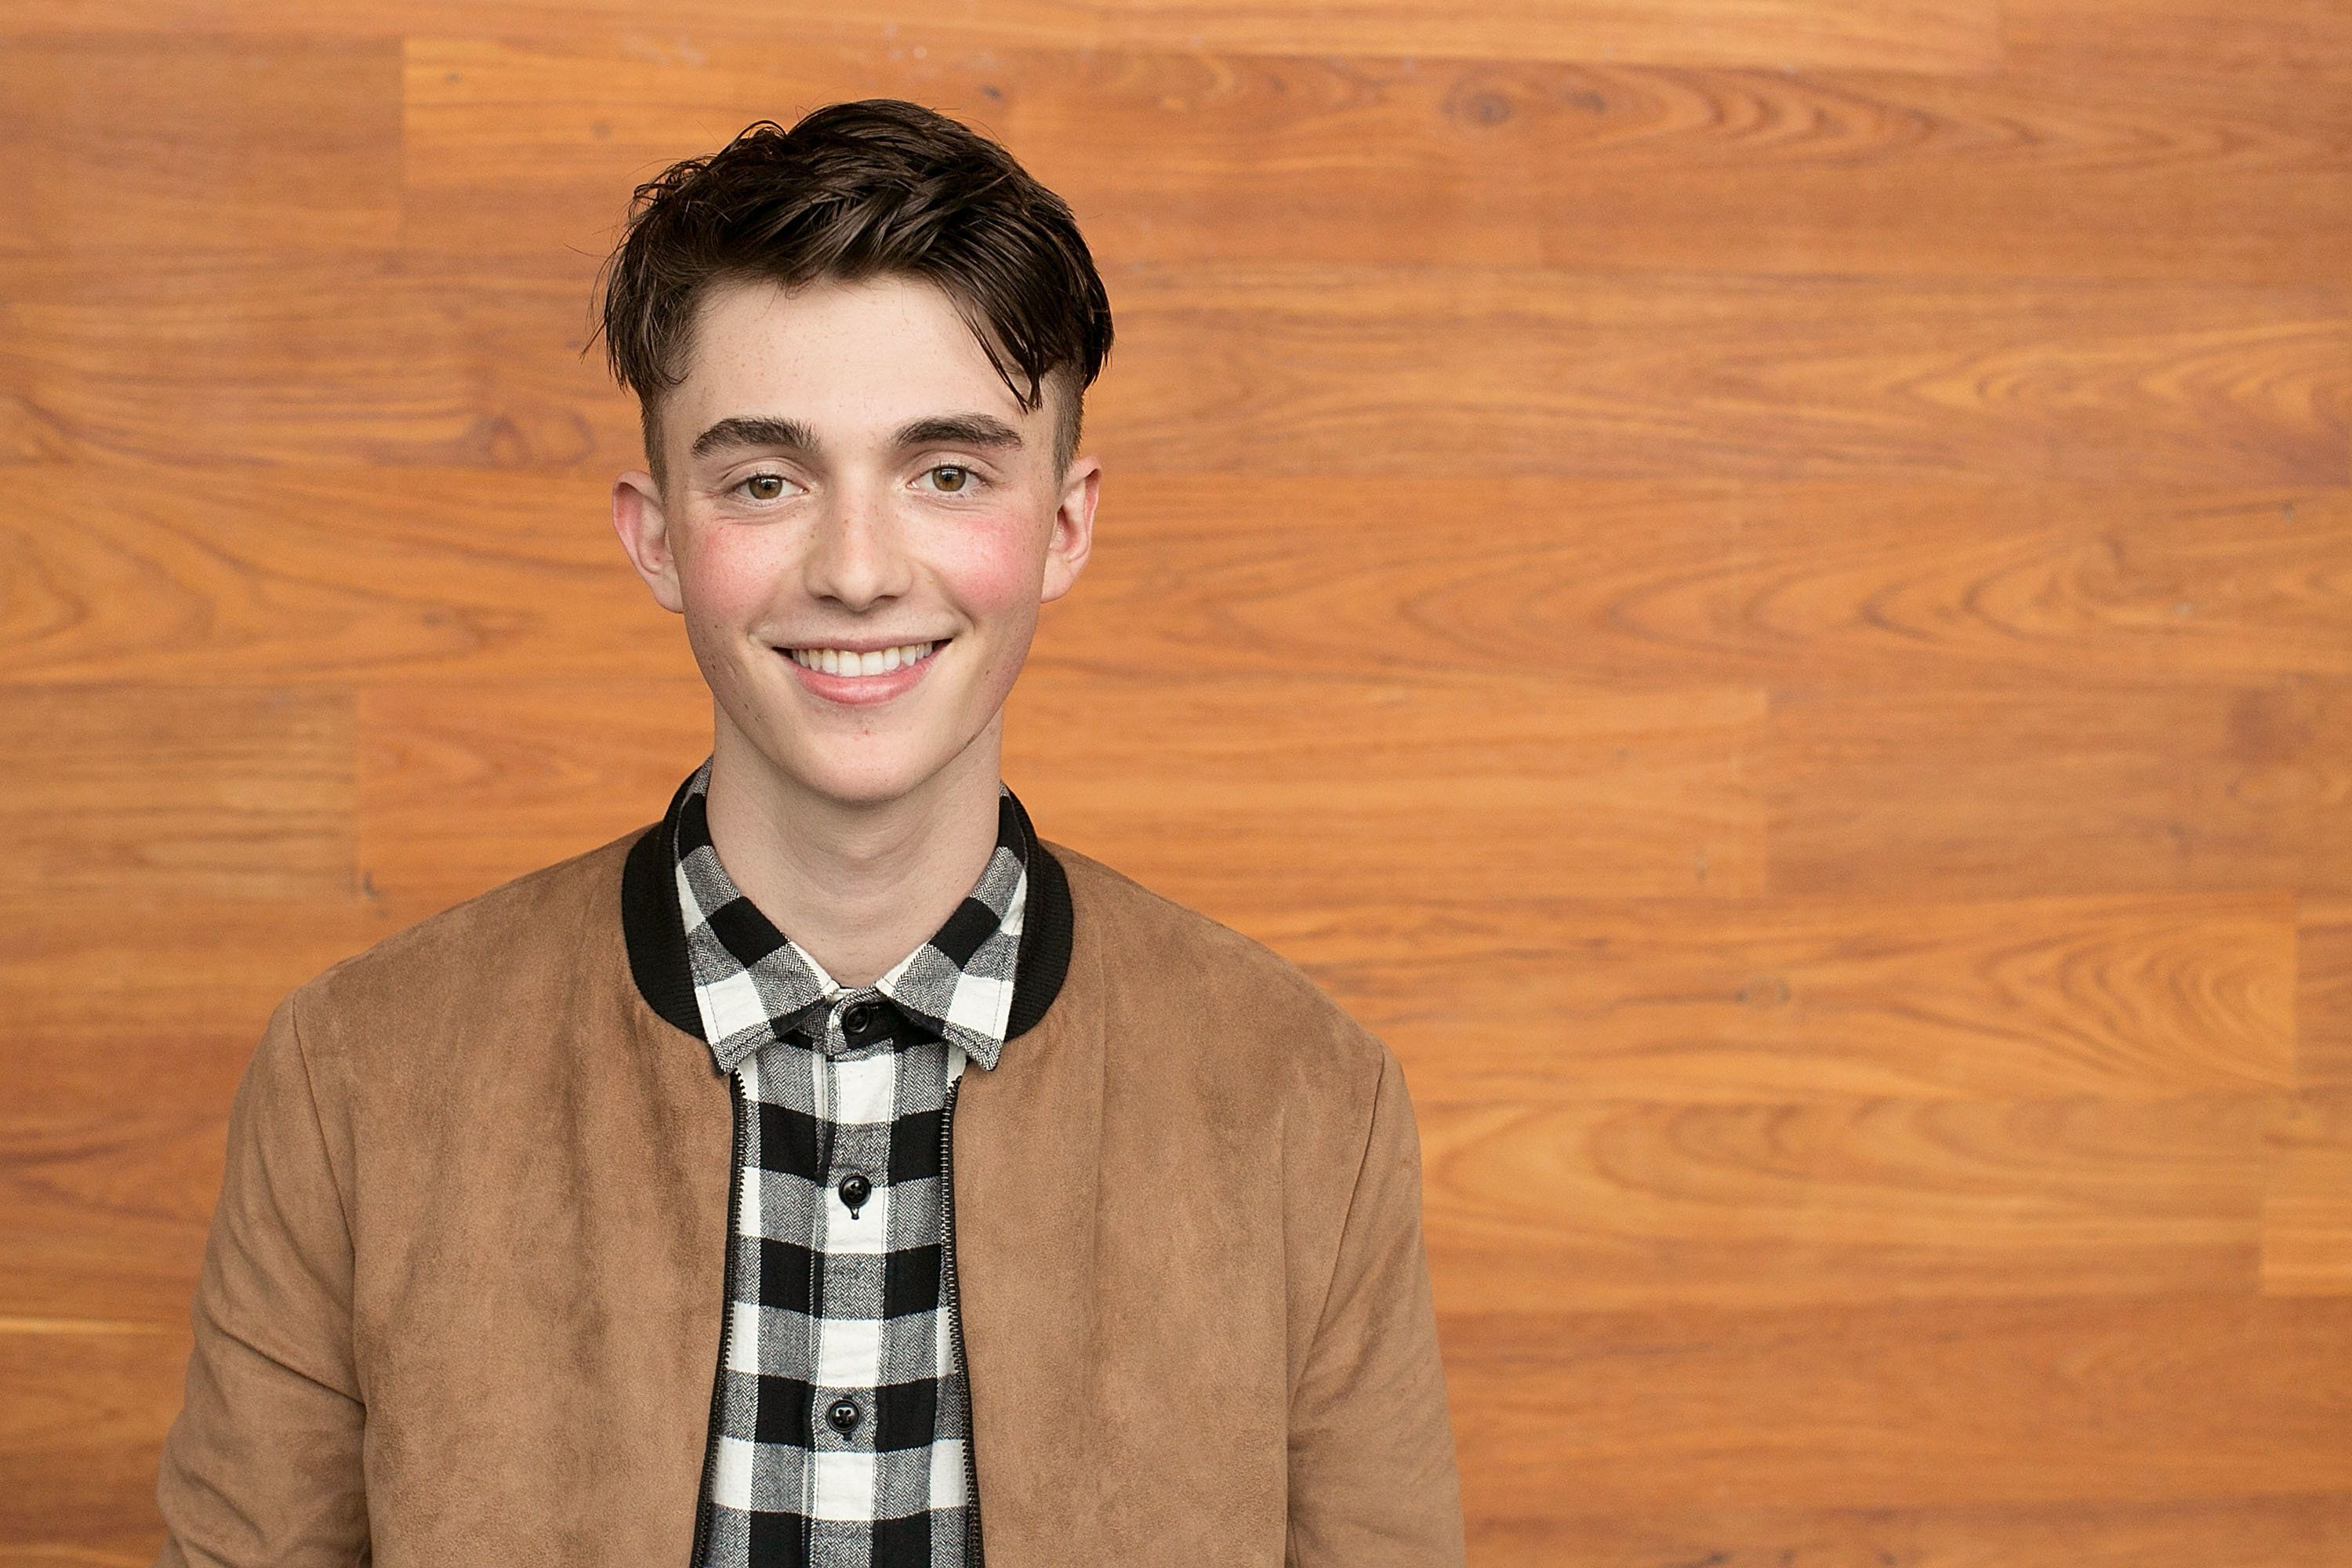 Greyson Chance Comes Out as Gay in 'Overdue' Message to Fans